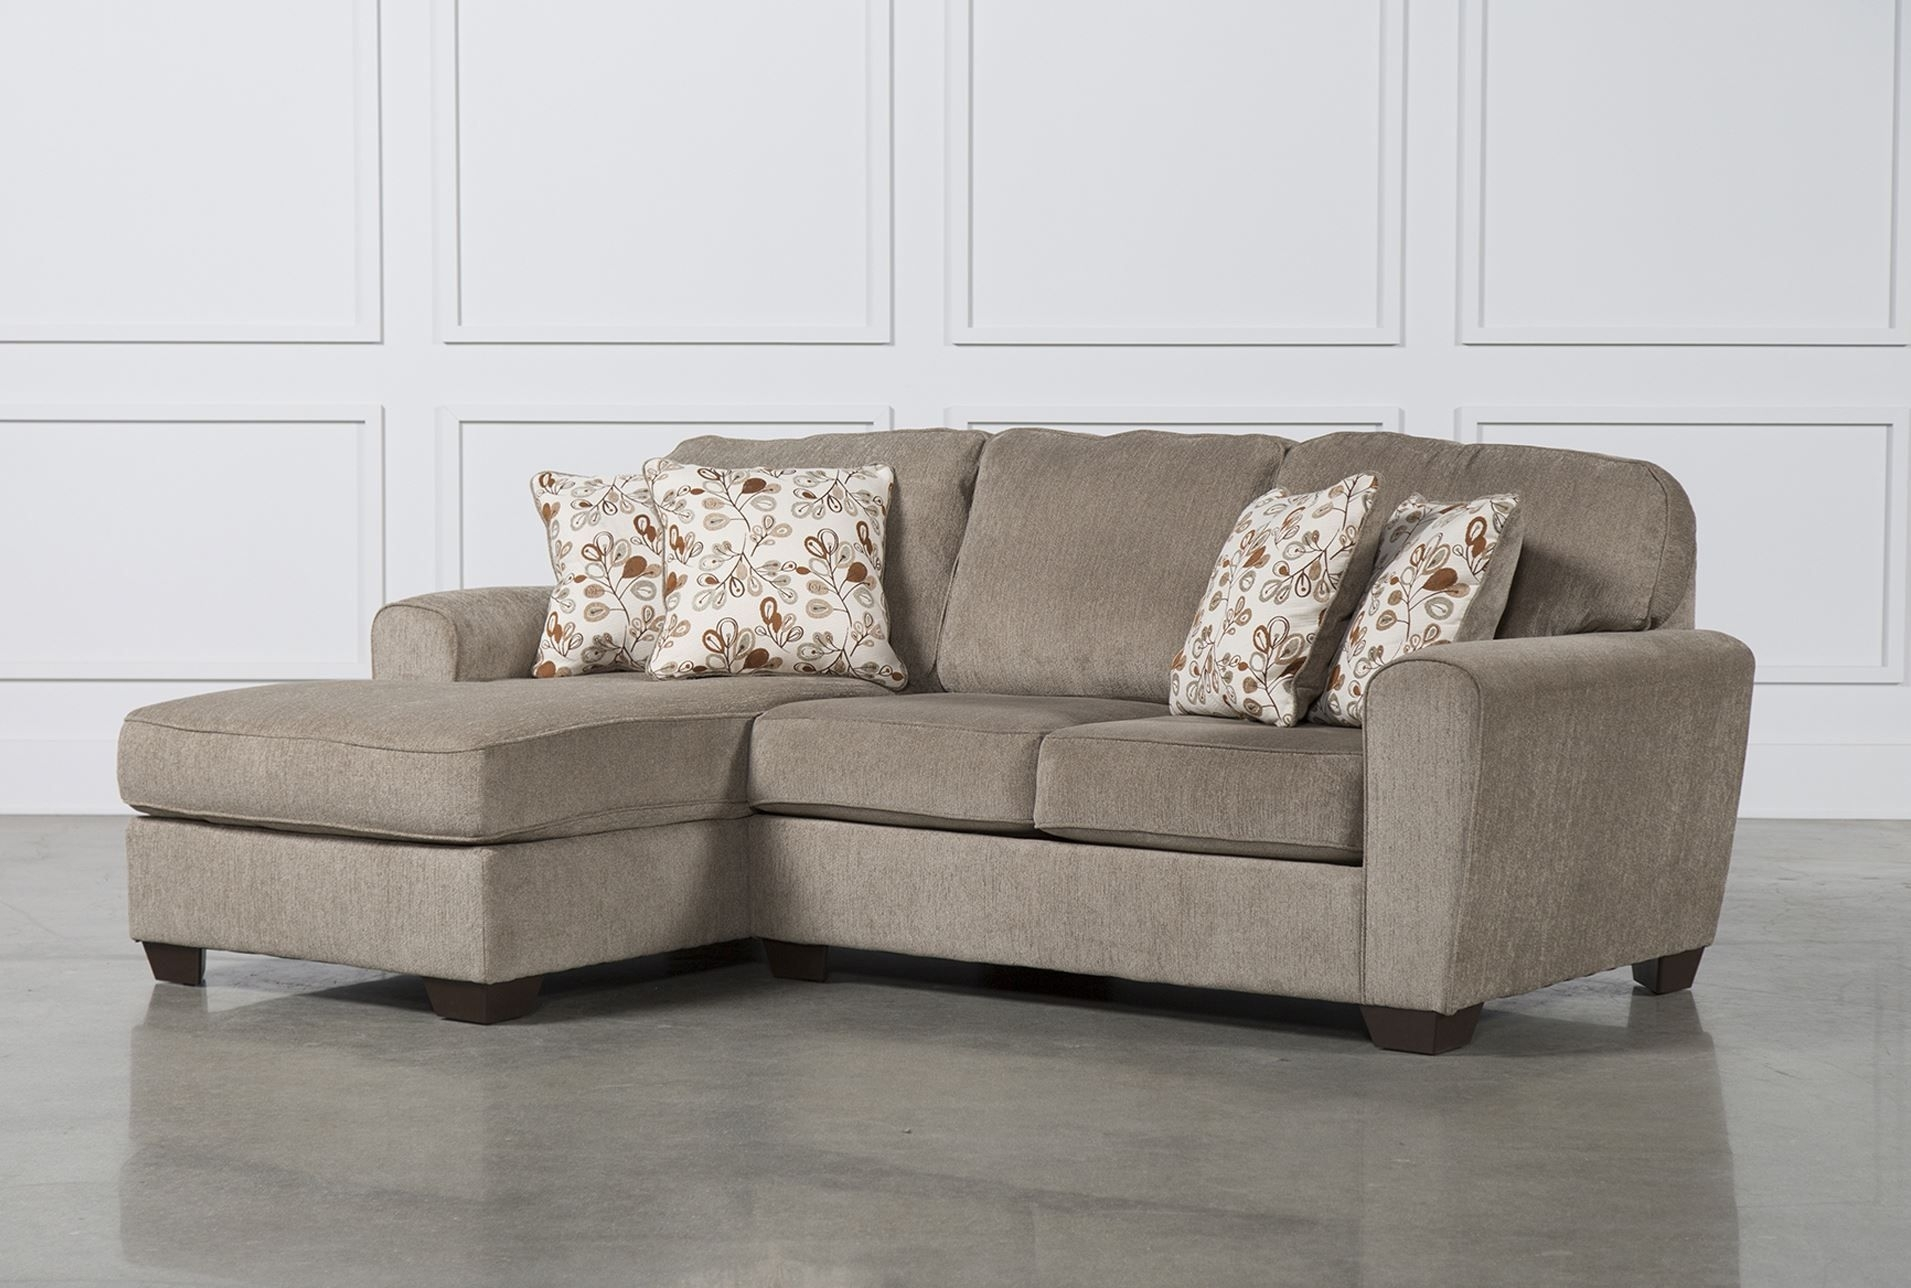 Patola Park 2 Piece Sectional W/laf Chaise | Home Improvements Pertaining To Blaine 3 Piece Sectionals (View 14 of 25)